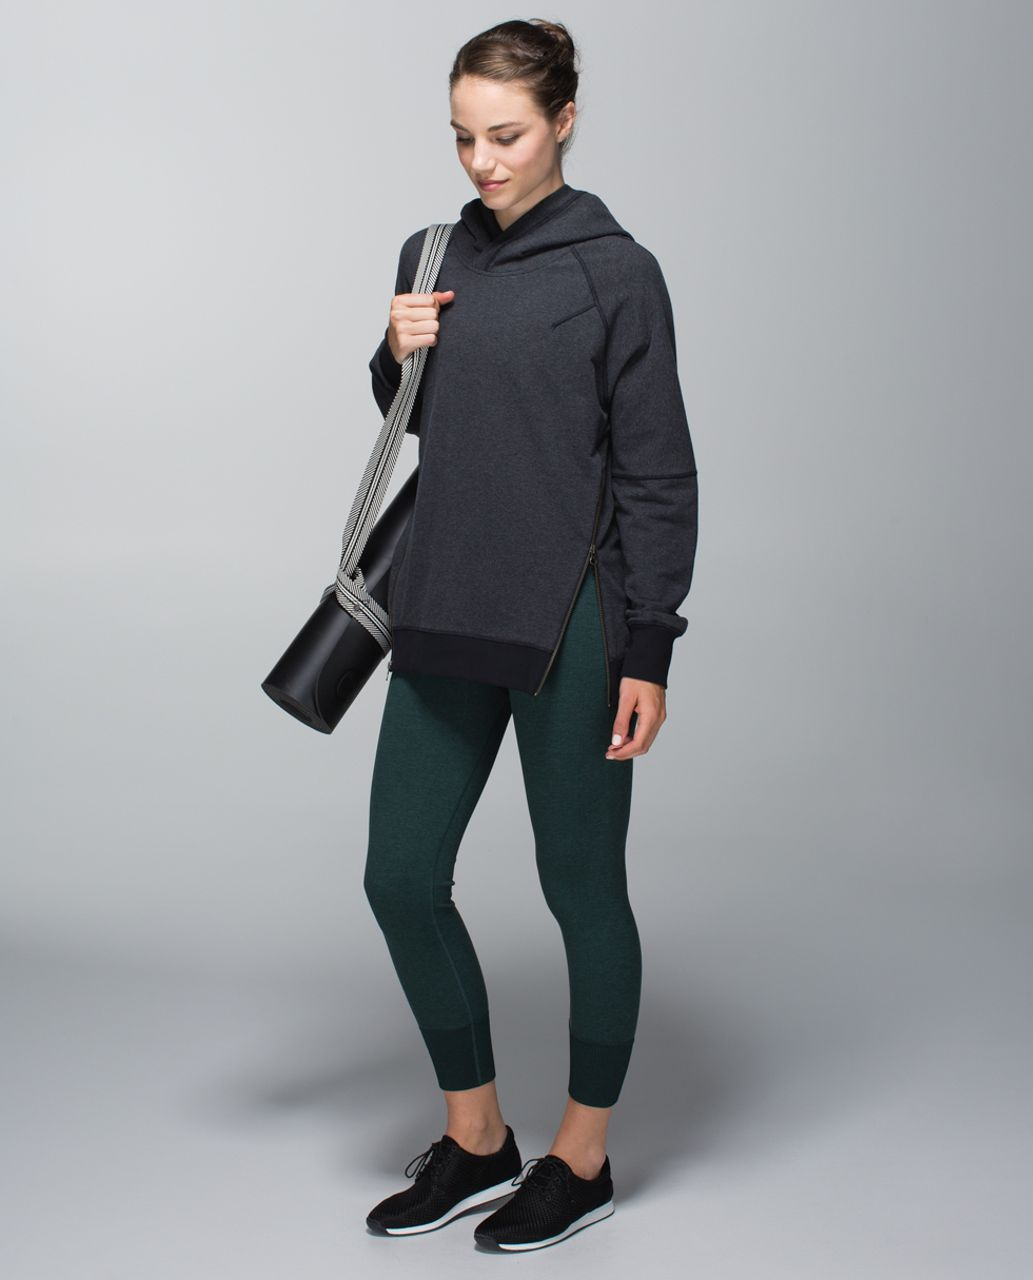 Lululemon Ebb To Street Pant - Heathered Fuel Green